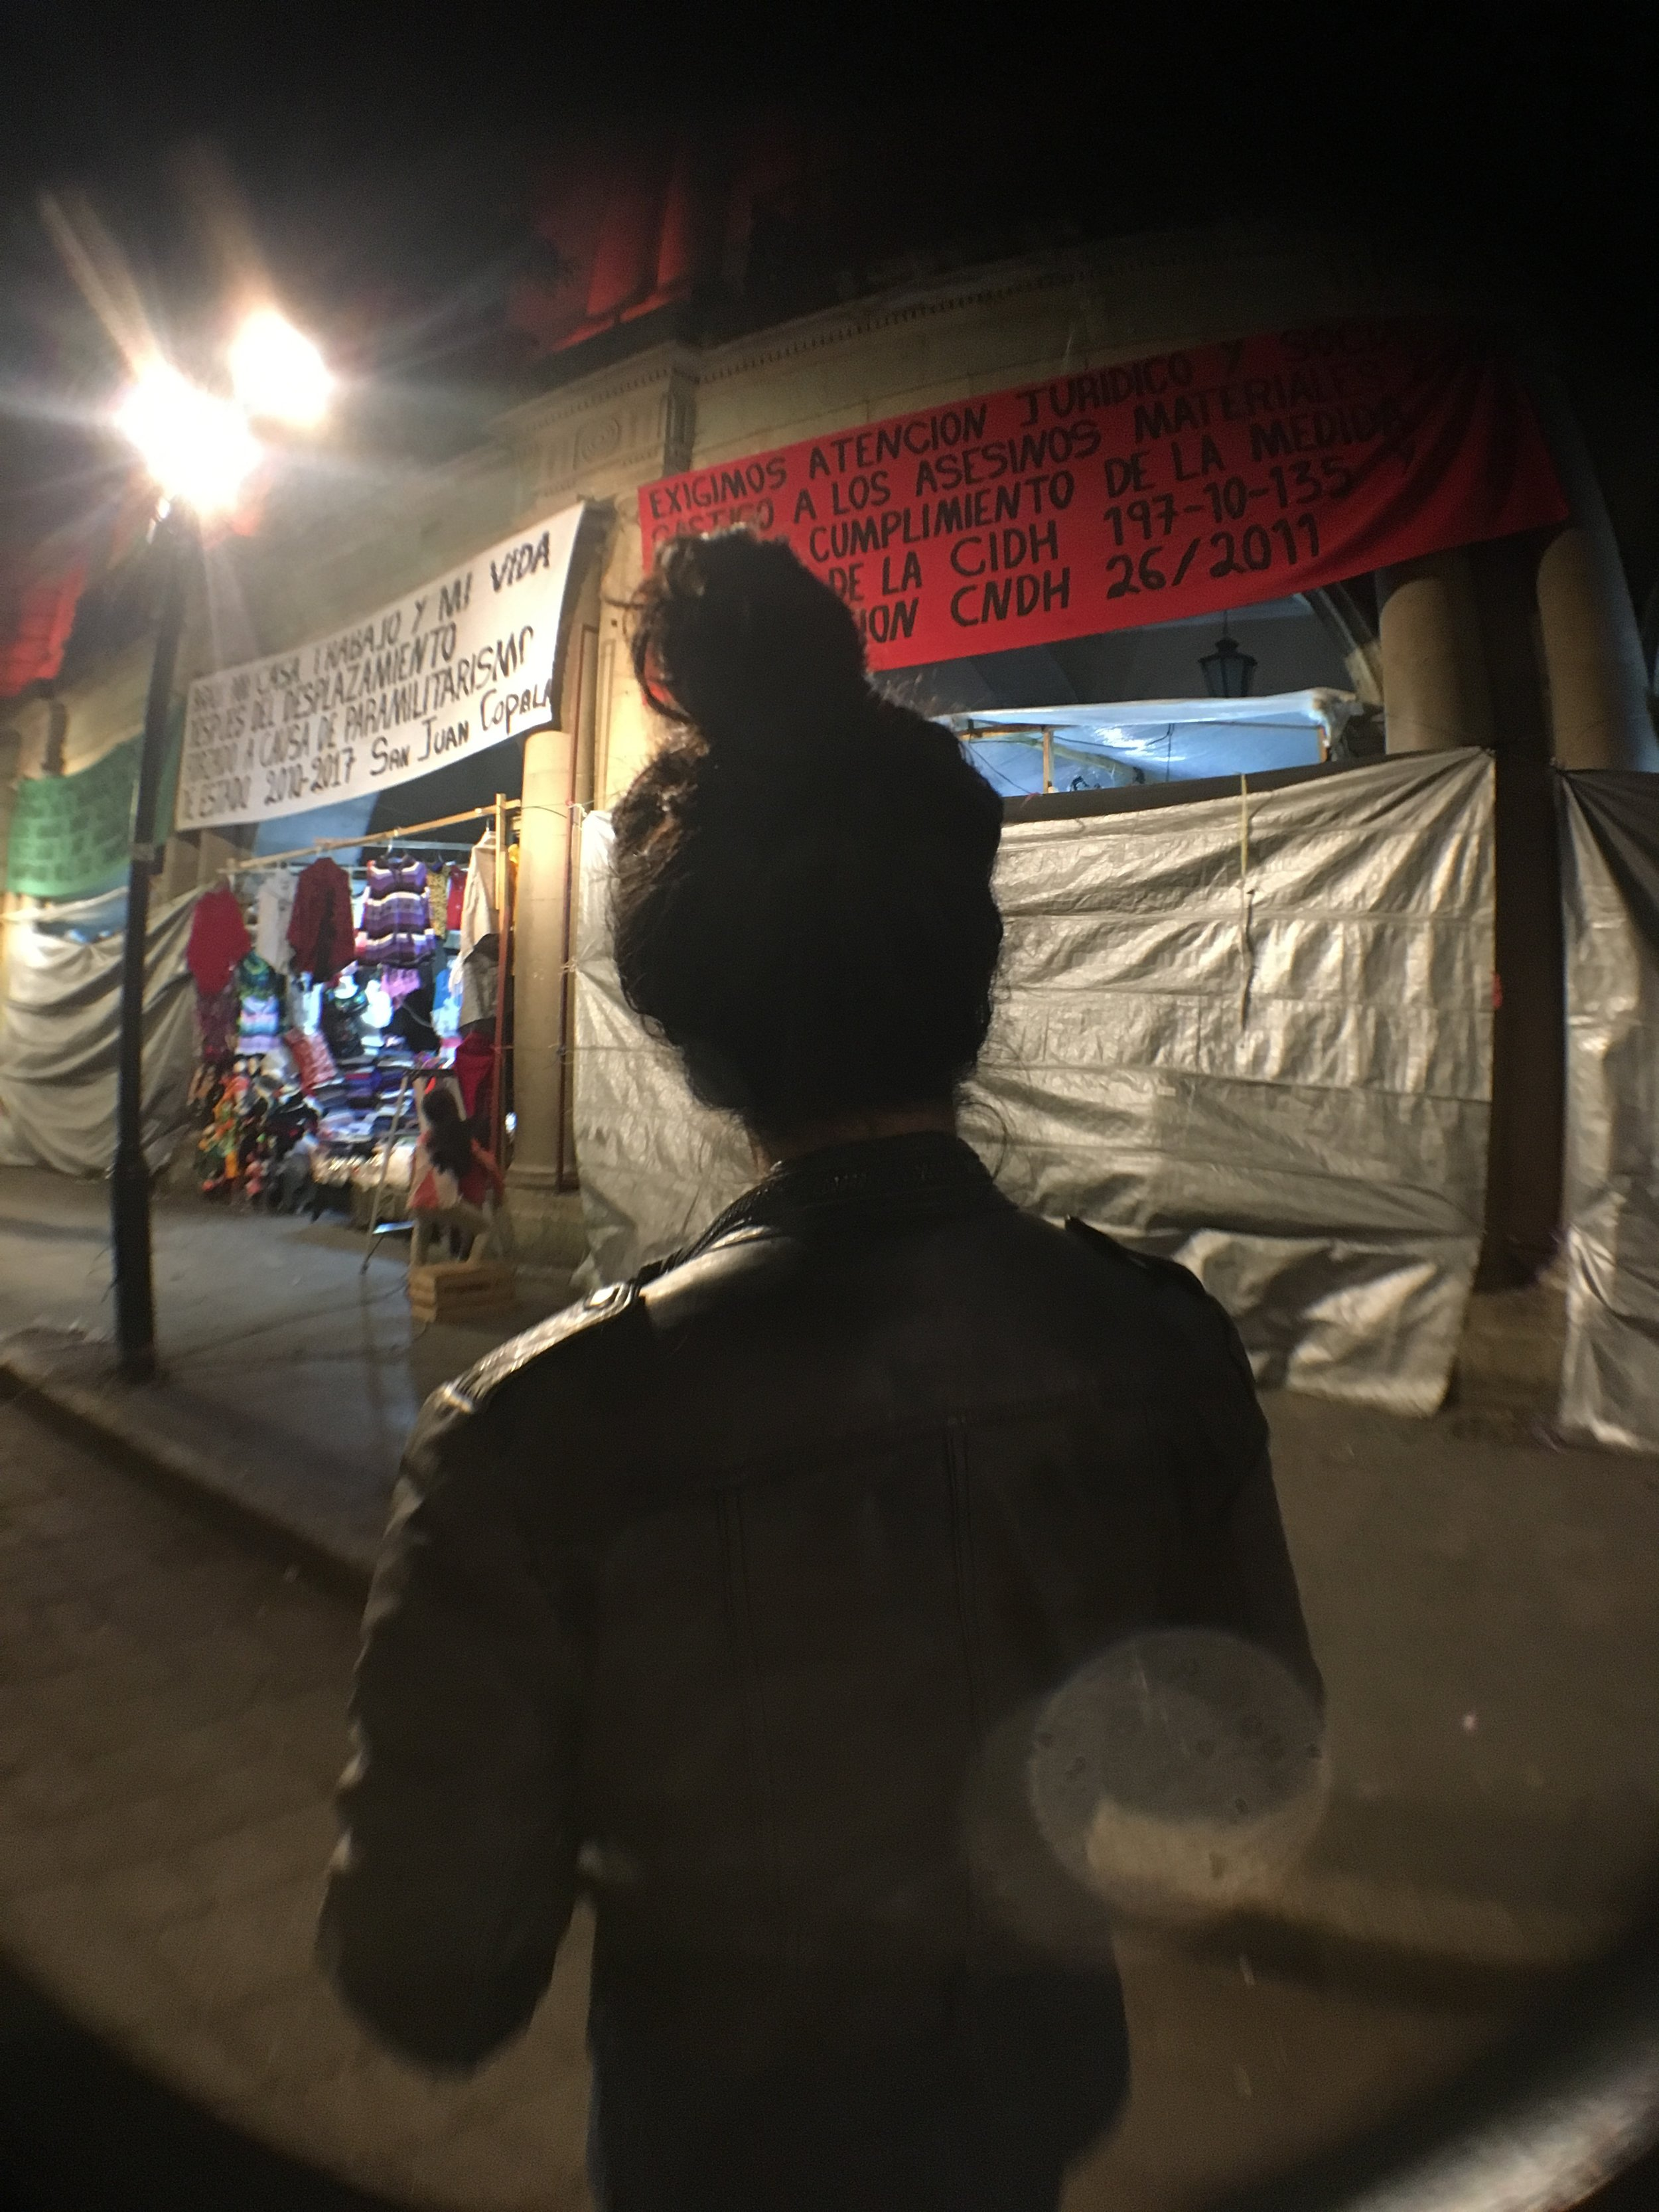 In the Zócalo. Protestors took over the square. Photo by  @samgraft